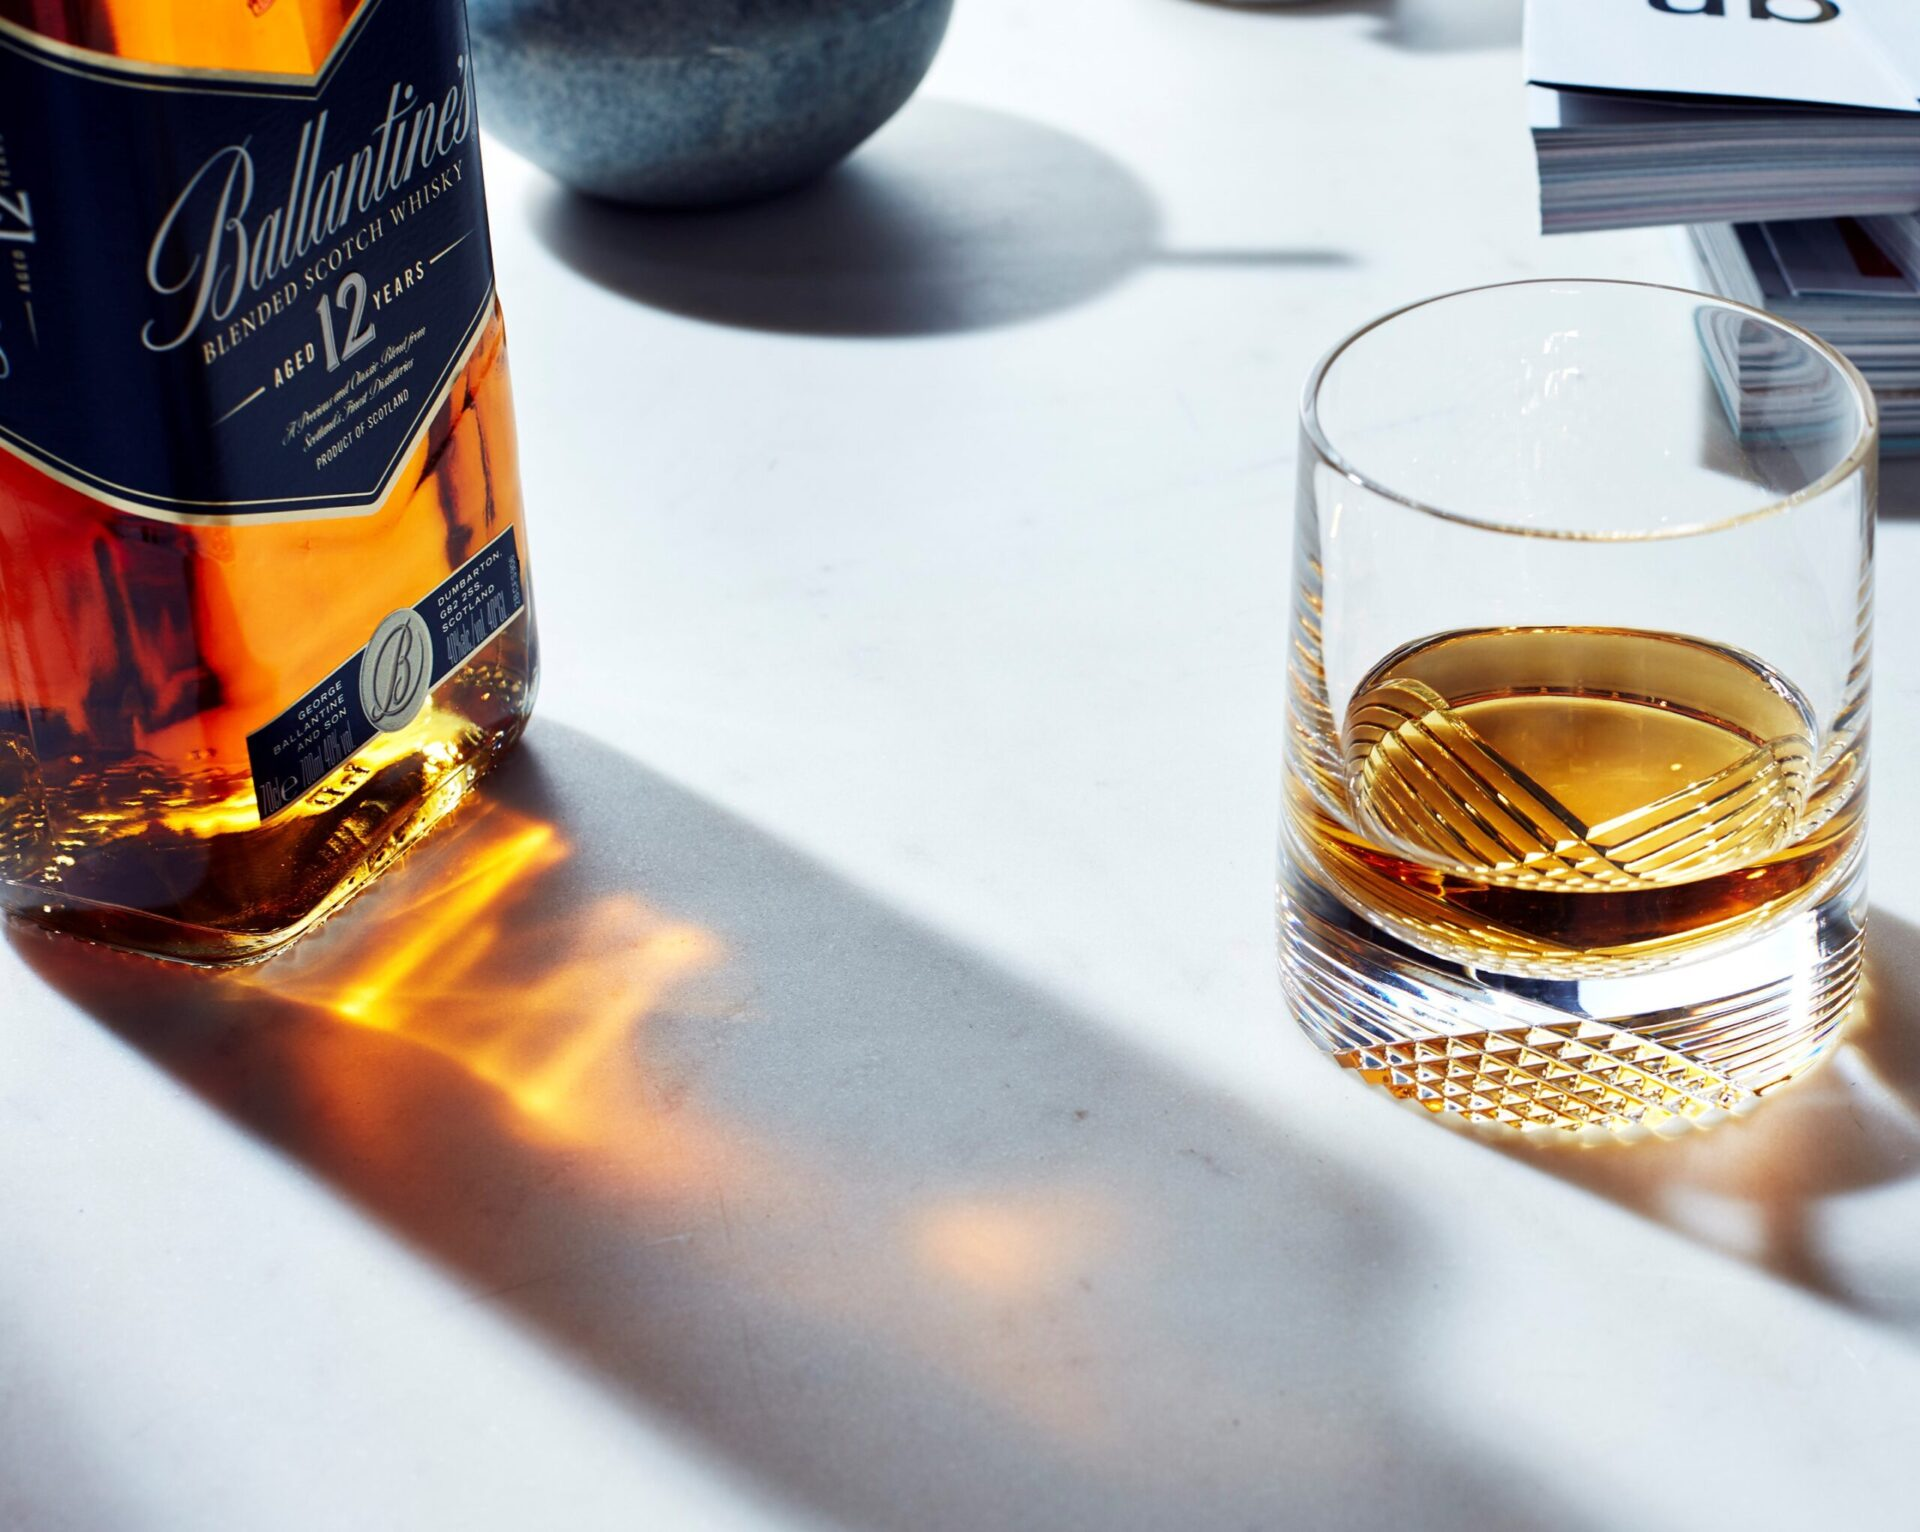 ballantines-12-year-old-served-neat